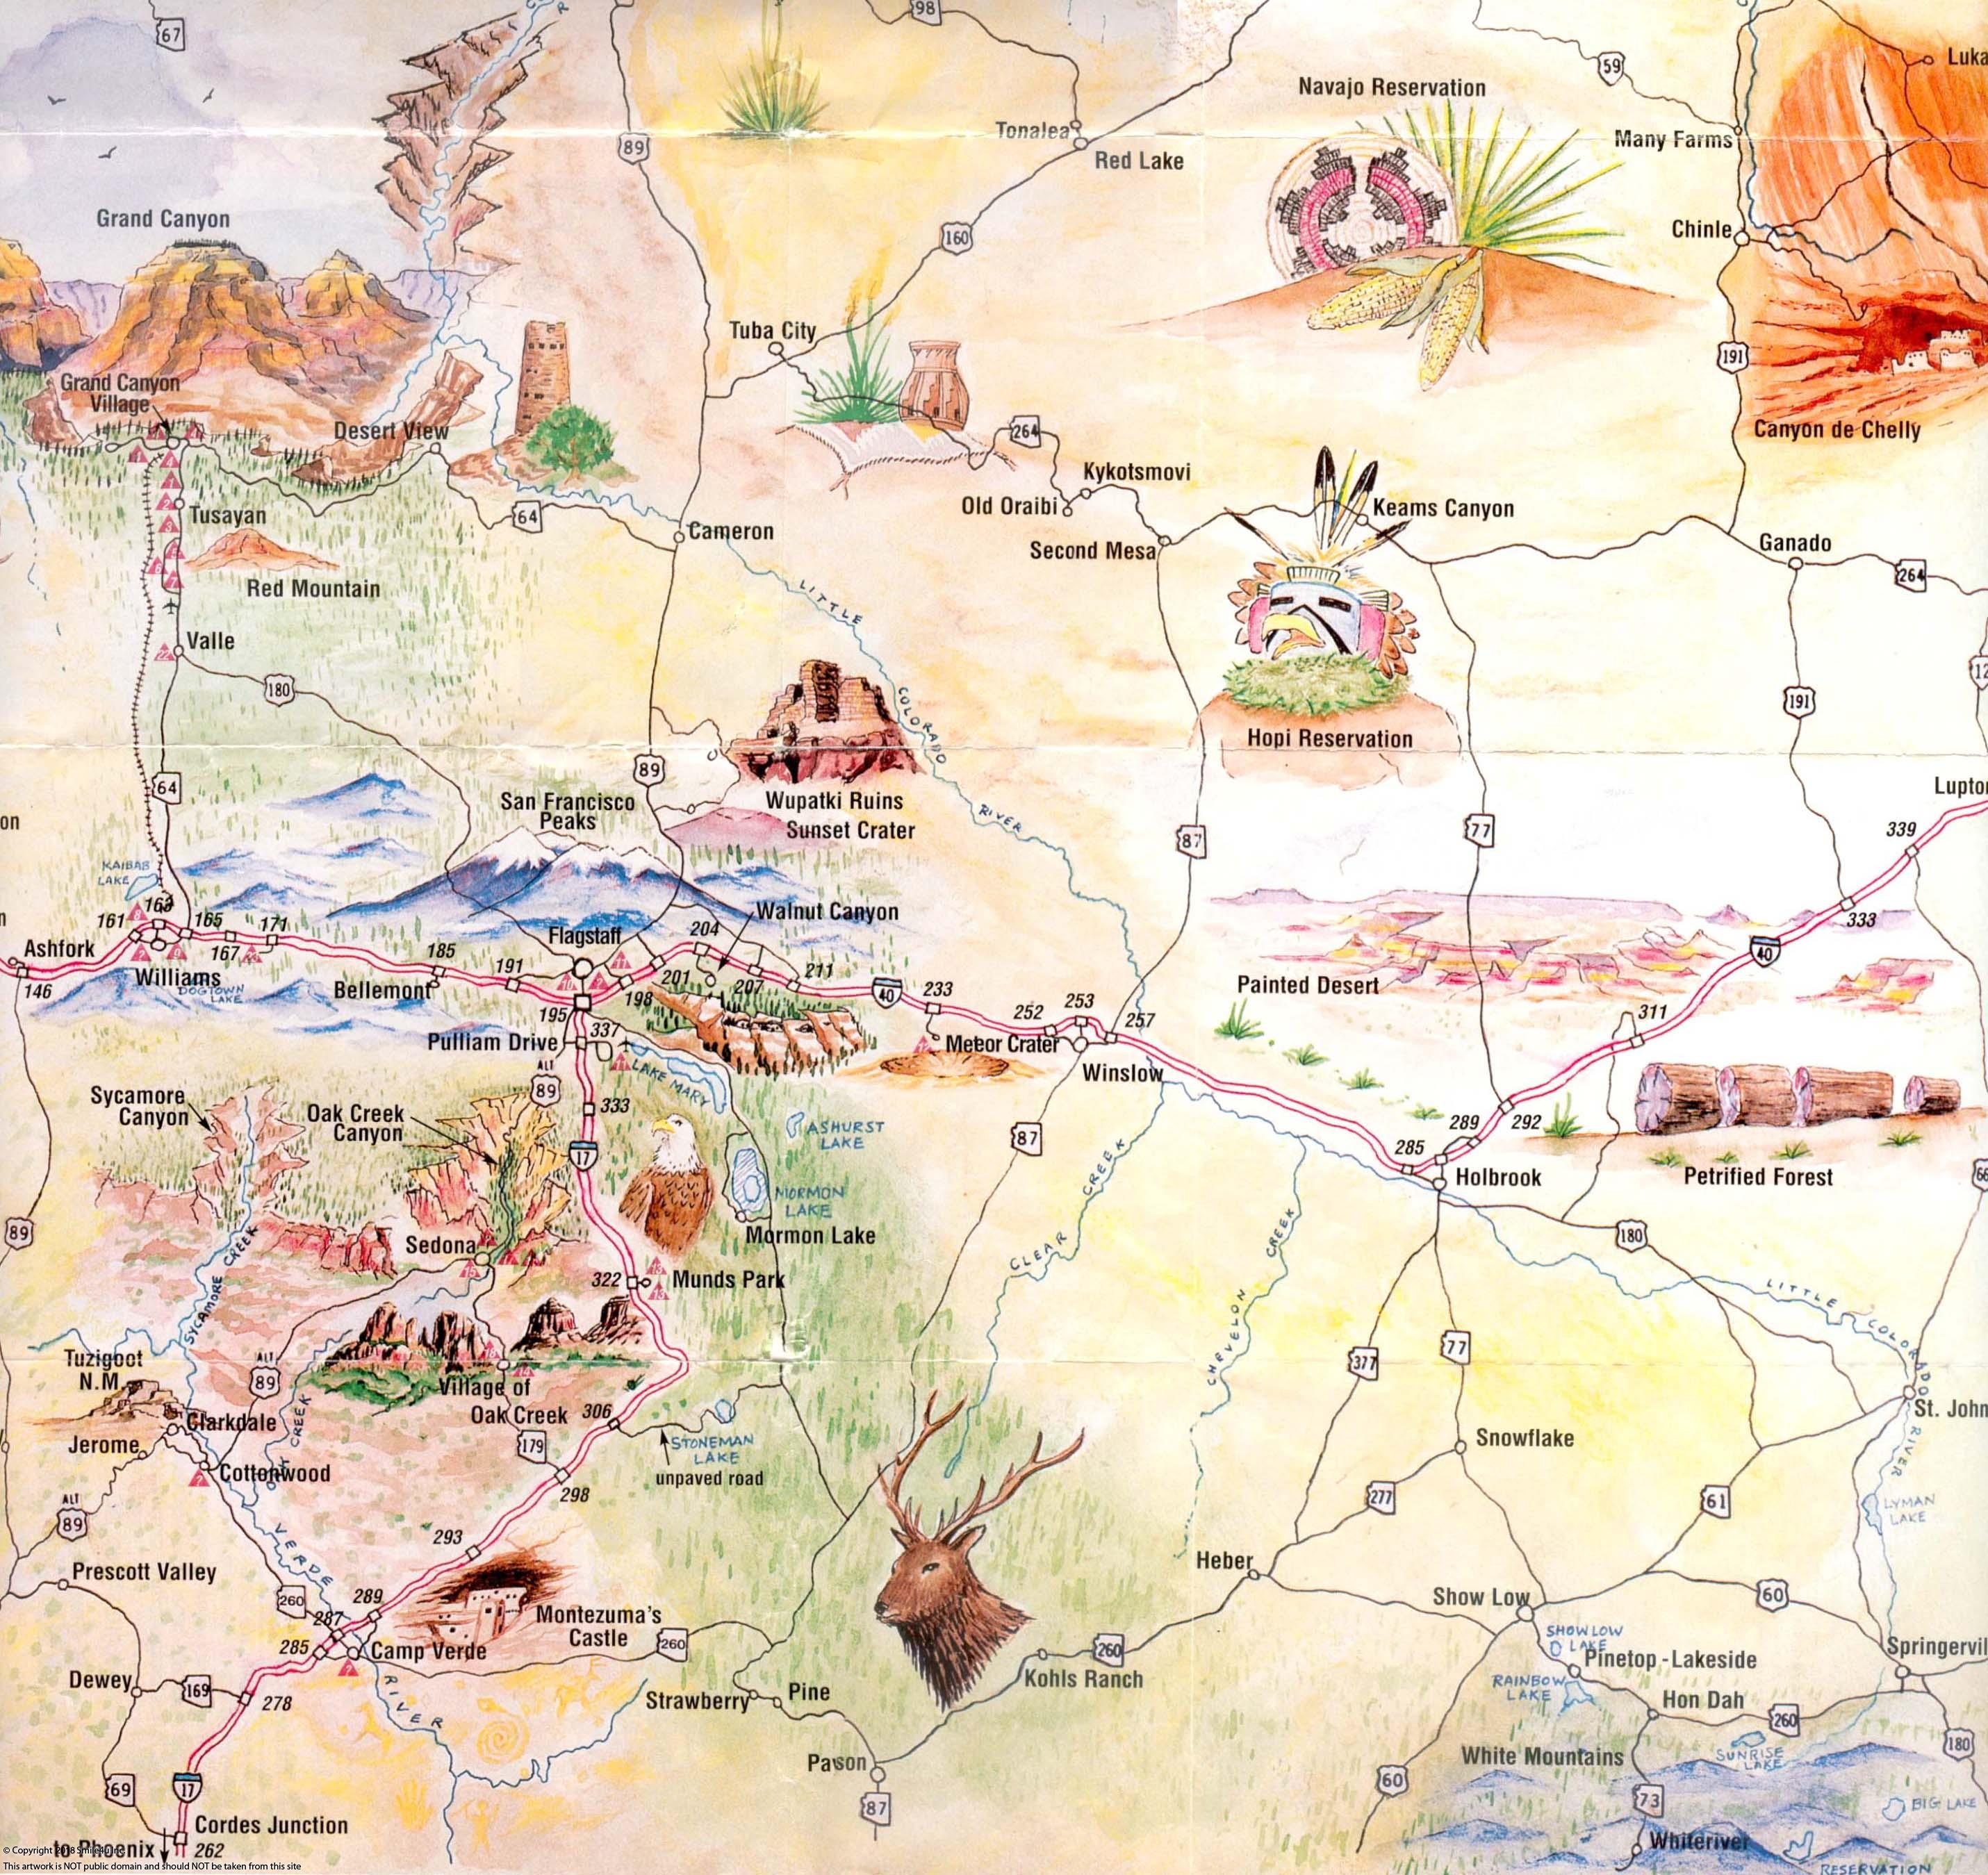 493303_watermarked_Navajo County Attraction Map.jpg